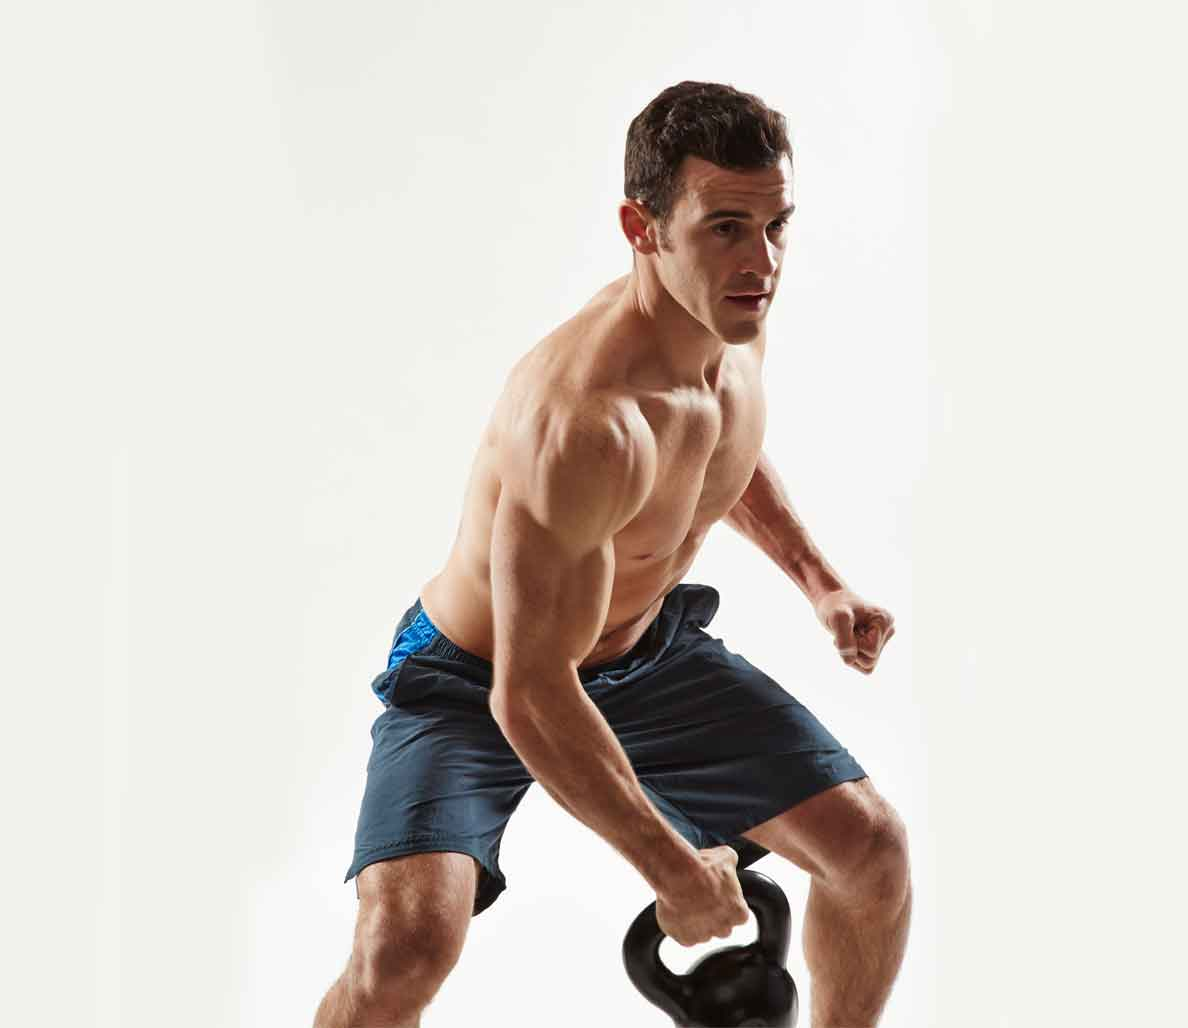 The 5-Move Kettlebell Workout for Muscle-Building and Fat-Loss